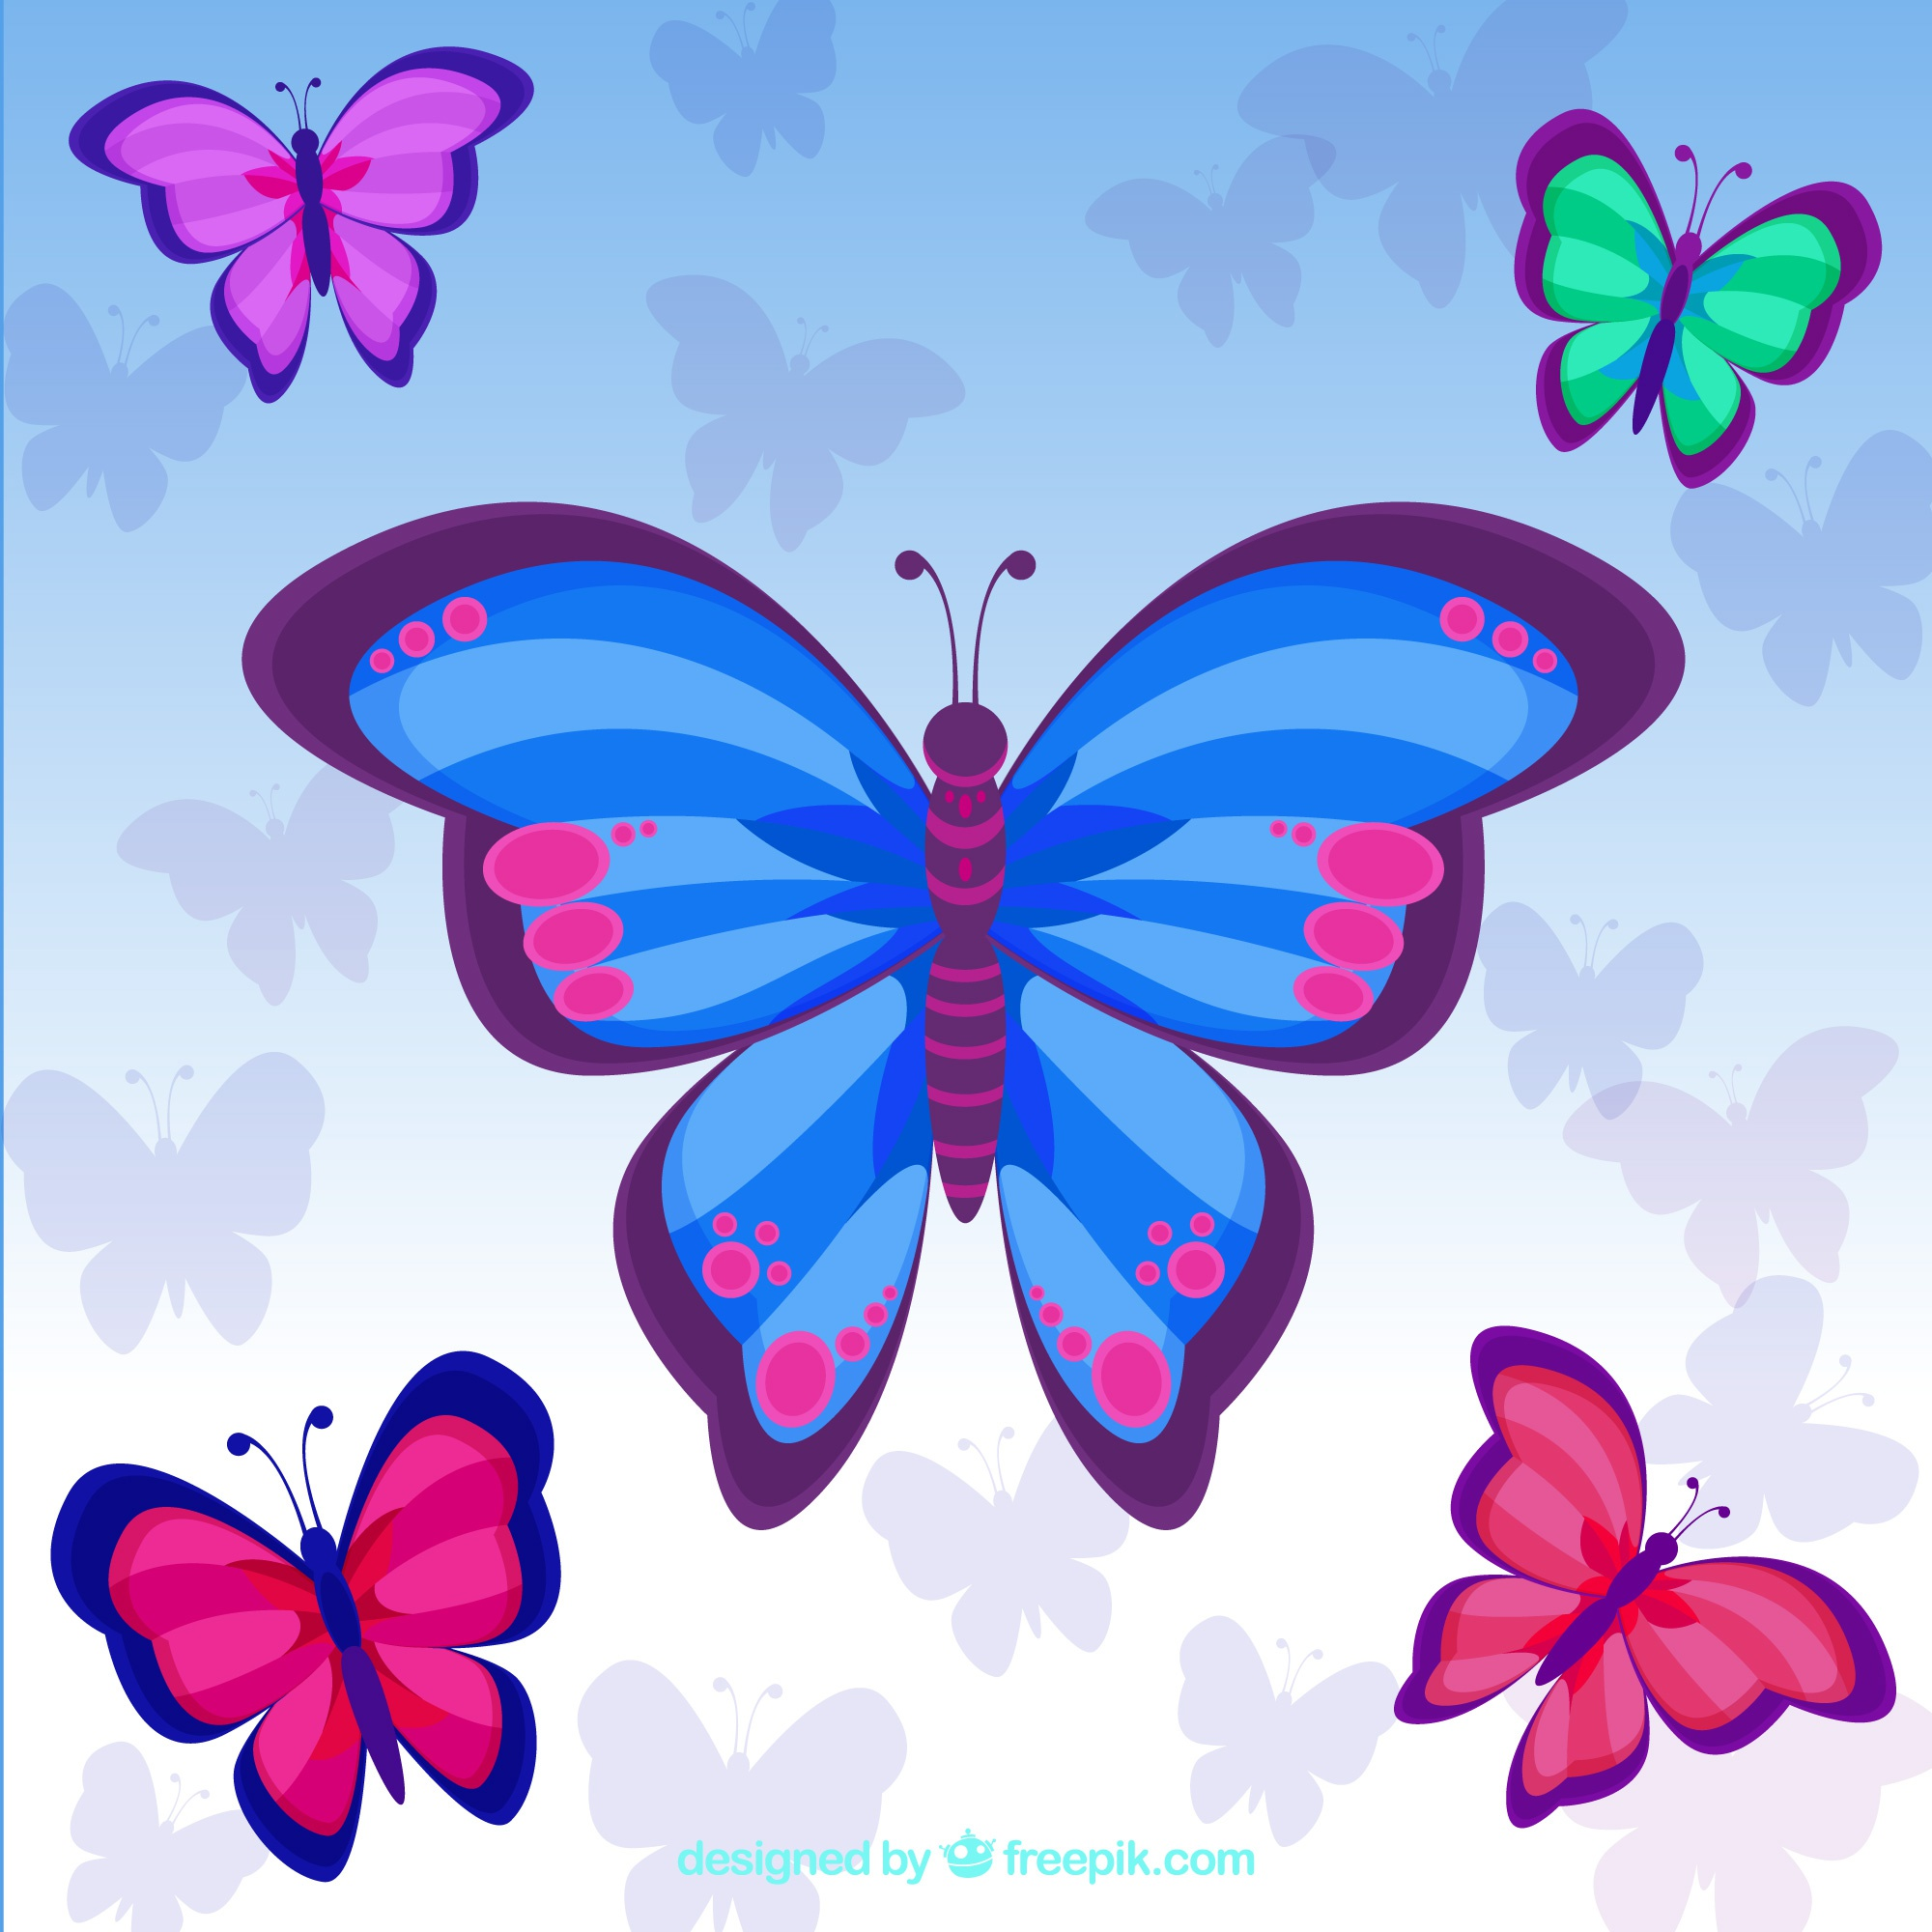 Cute background of colored butterflies